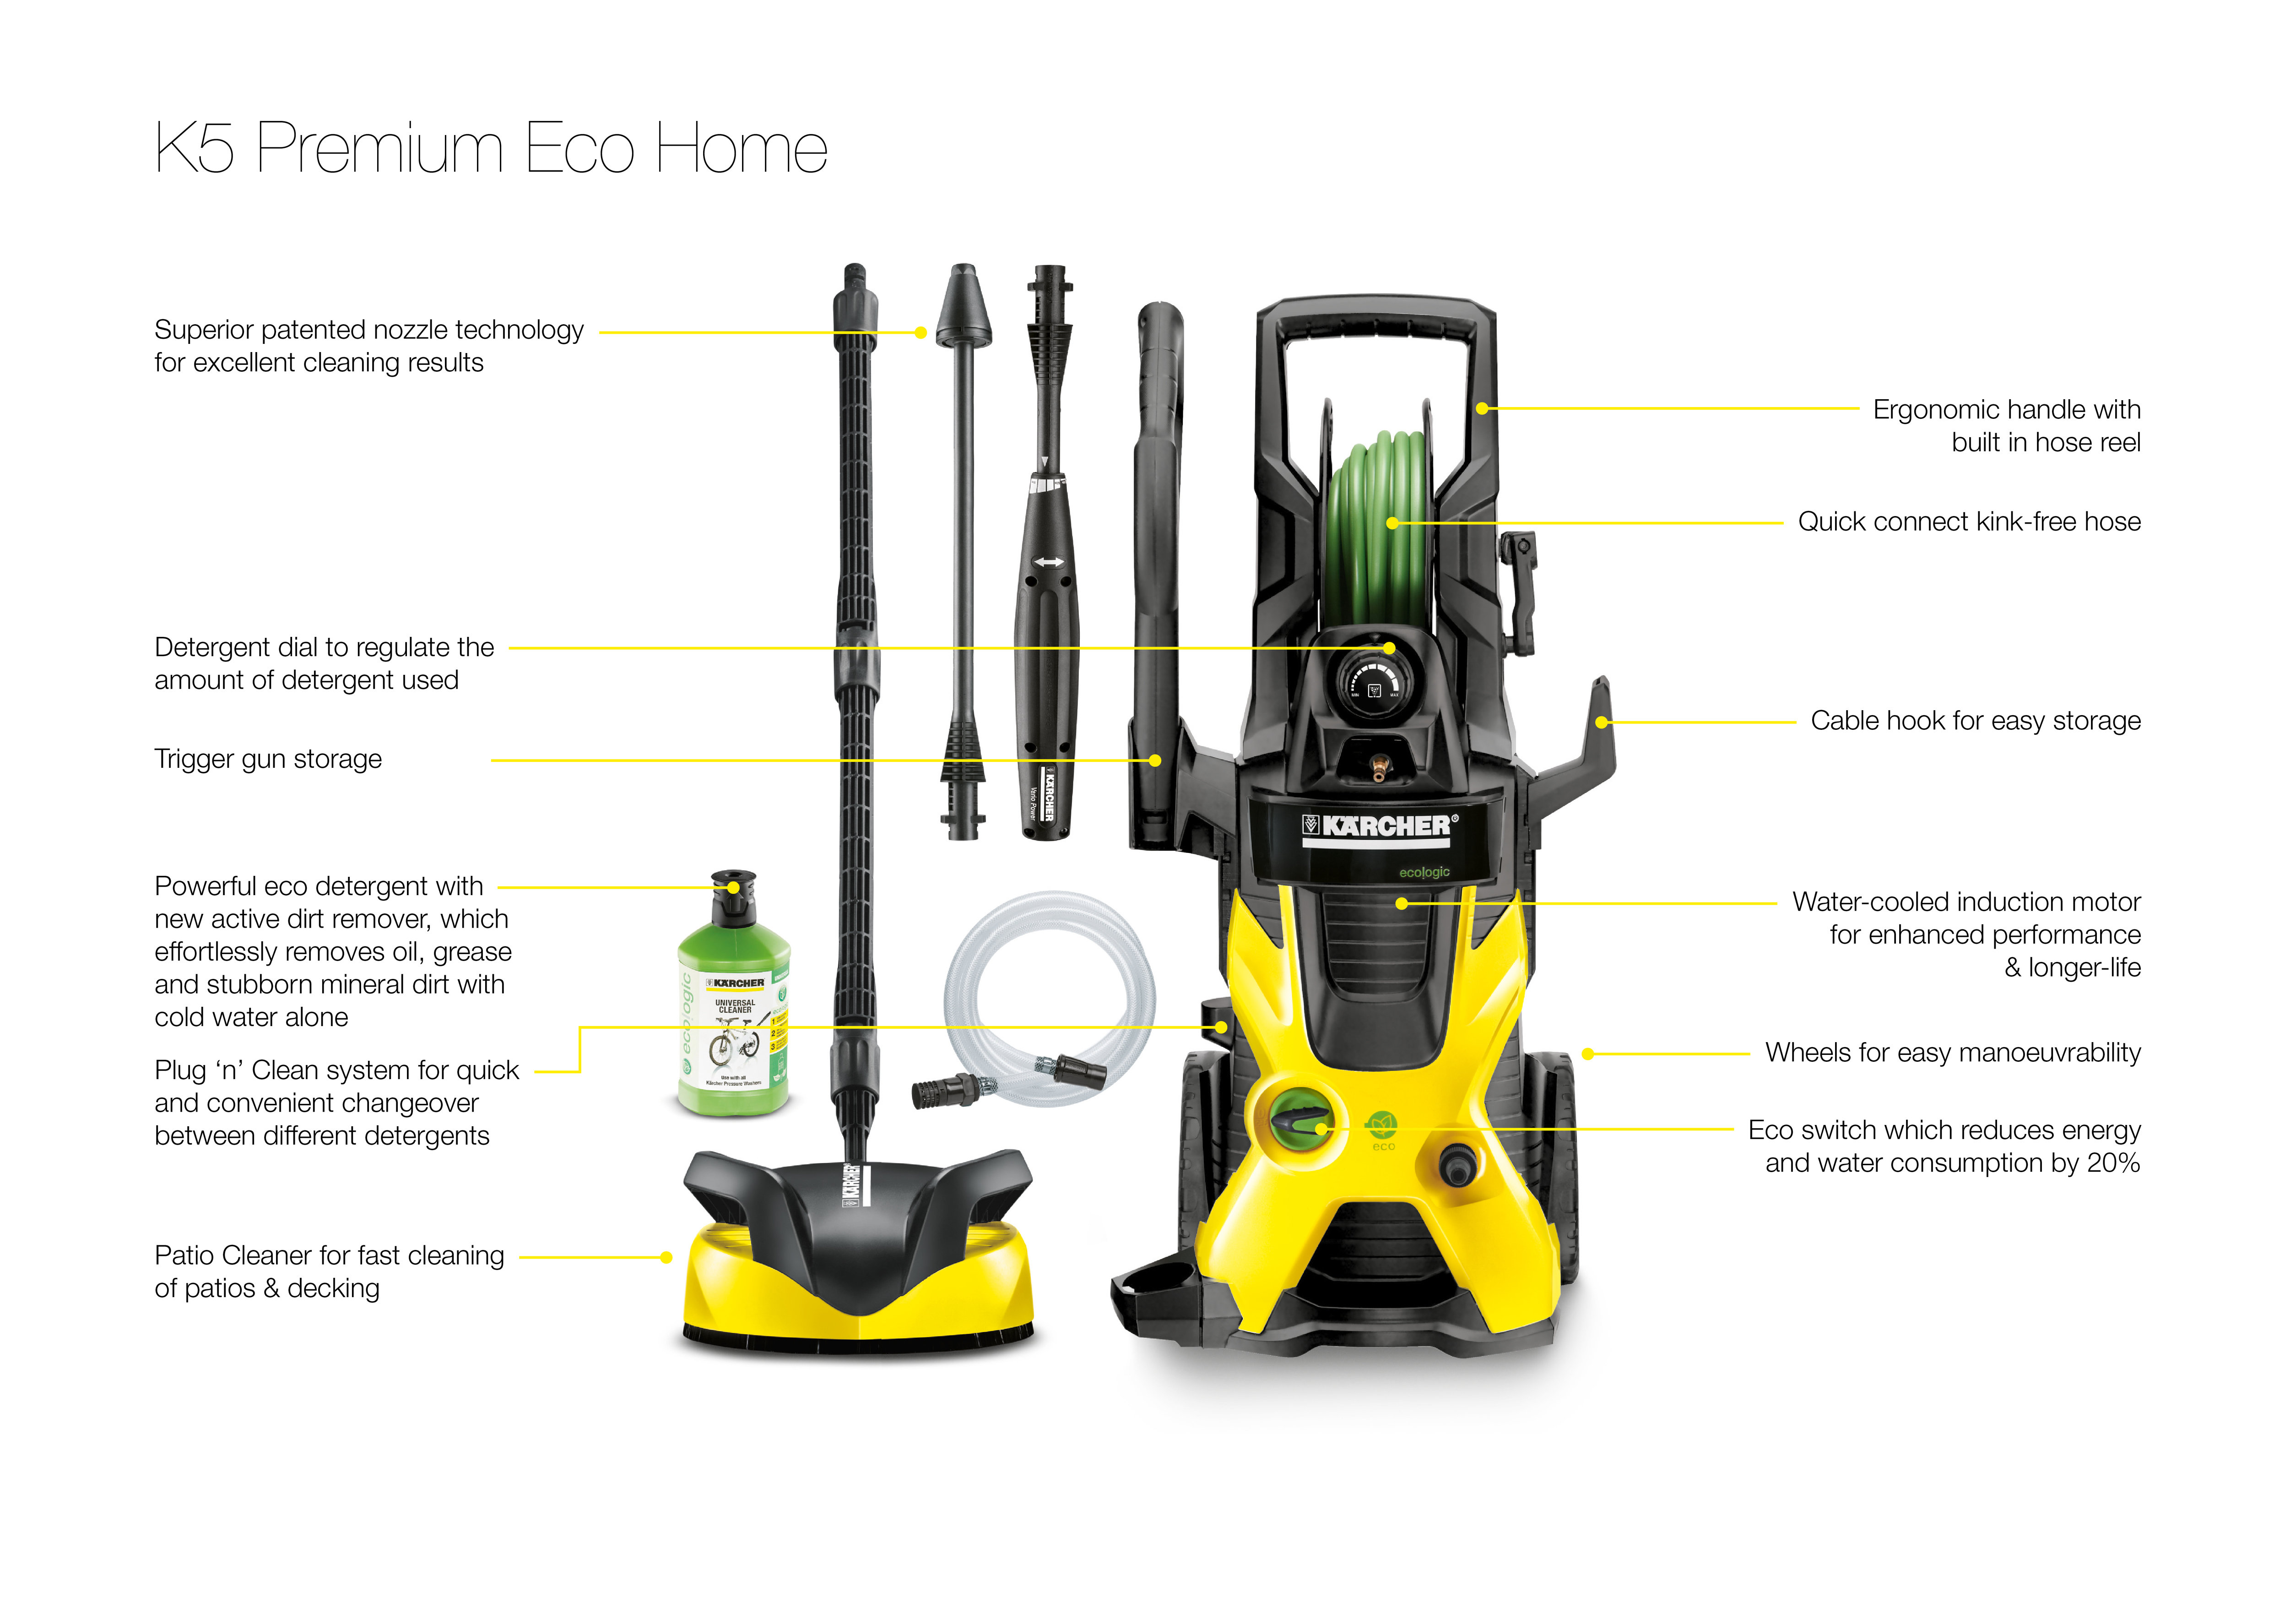 karcher k5 premium eco home eco pressure washer home. Black Bedroom Furniture Sets. Home Design Ideas